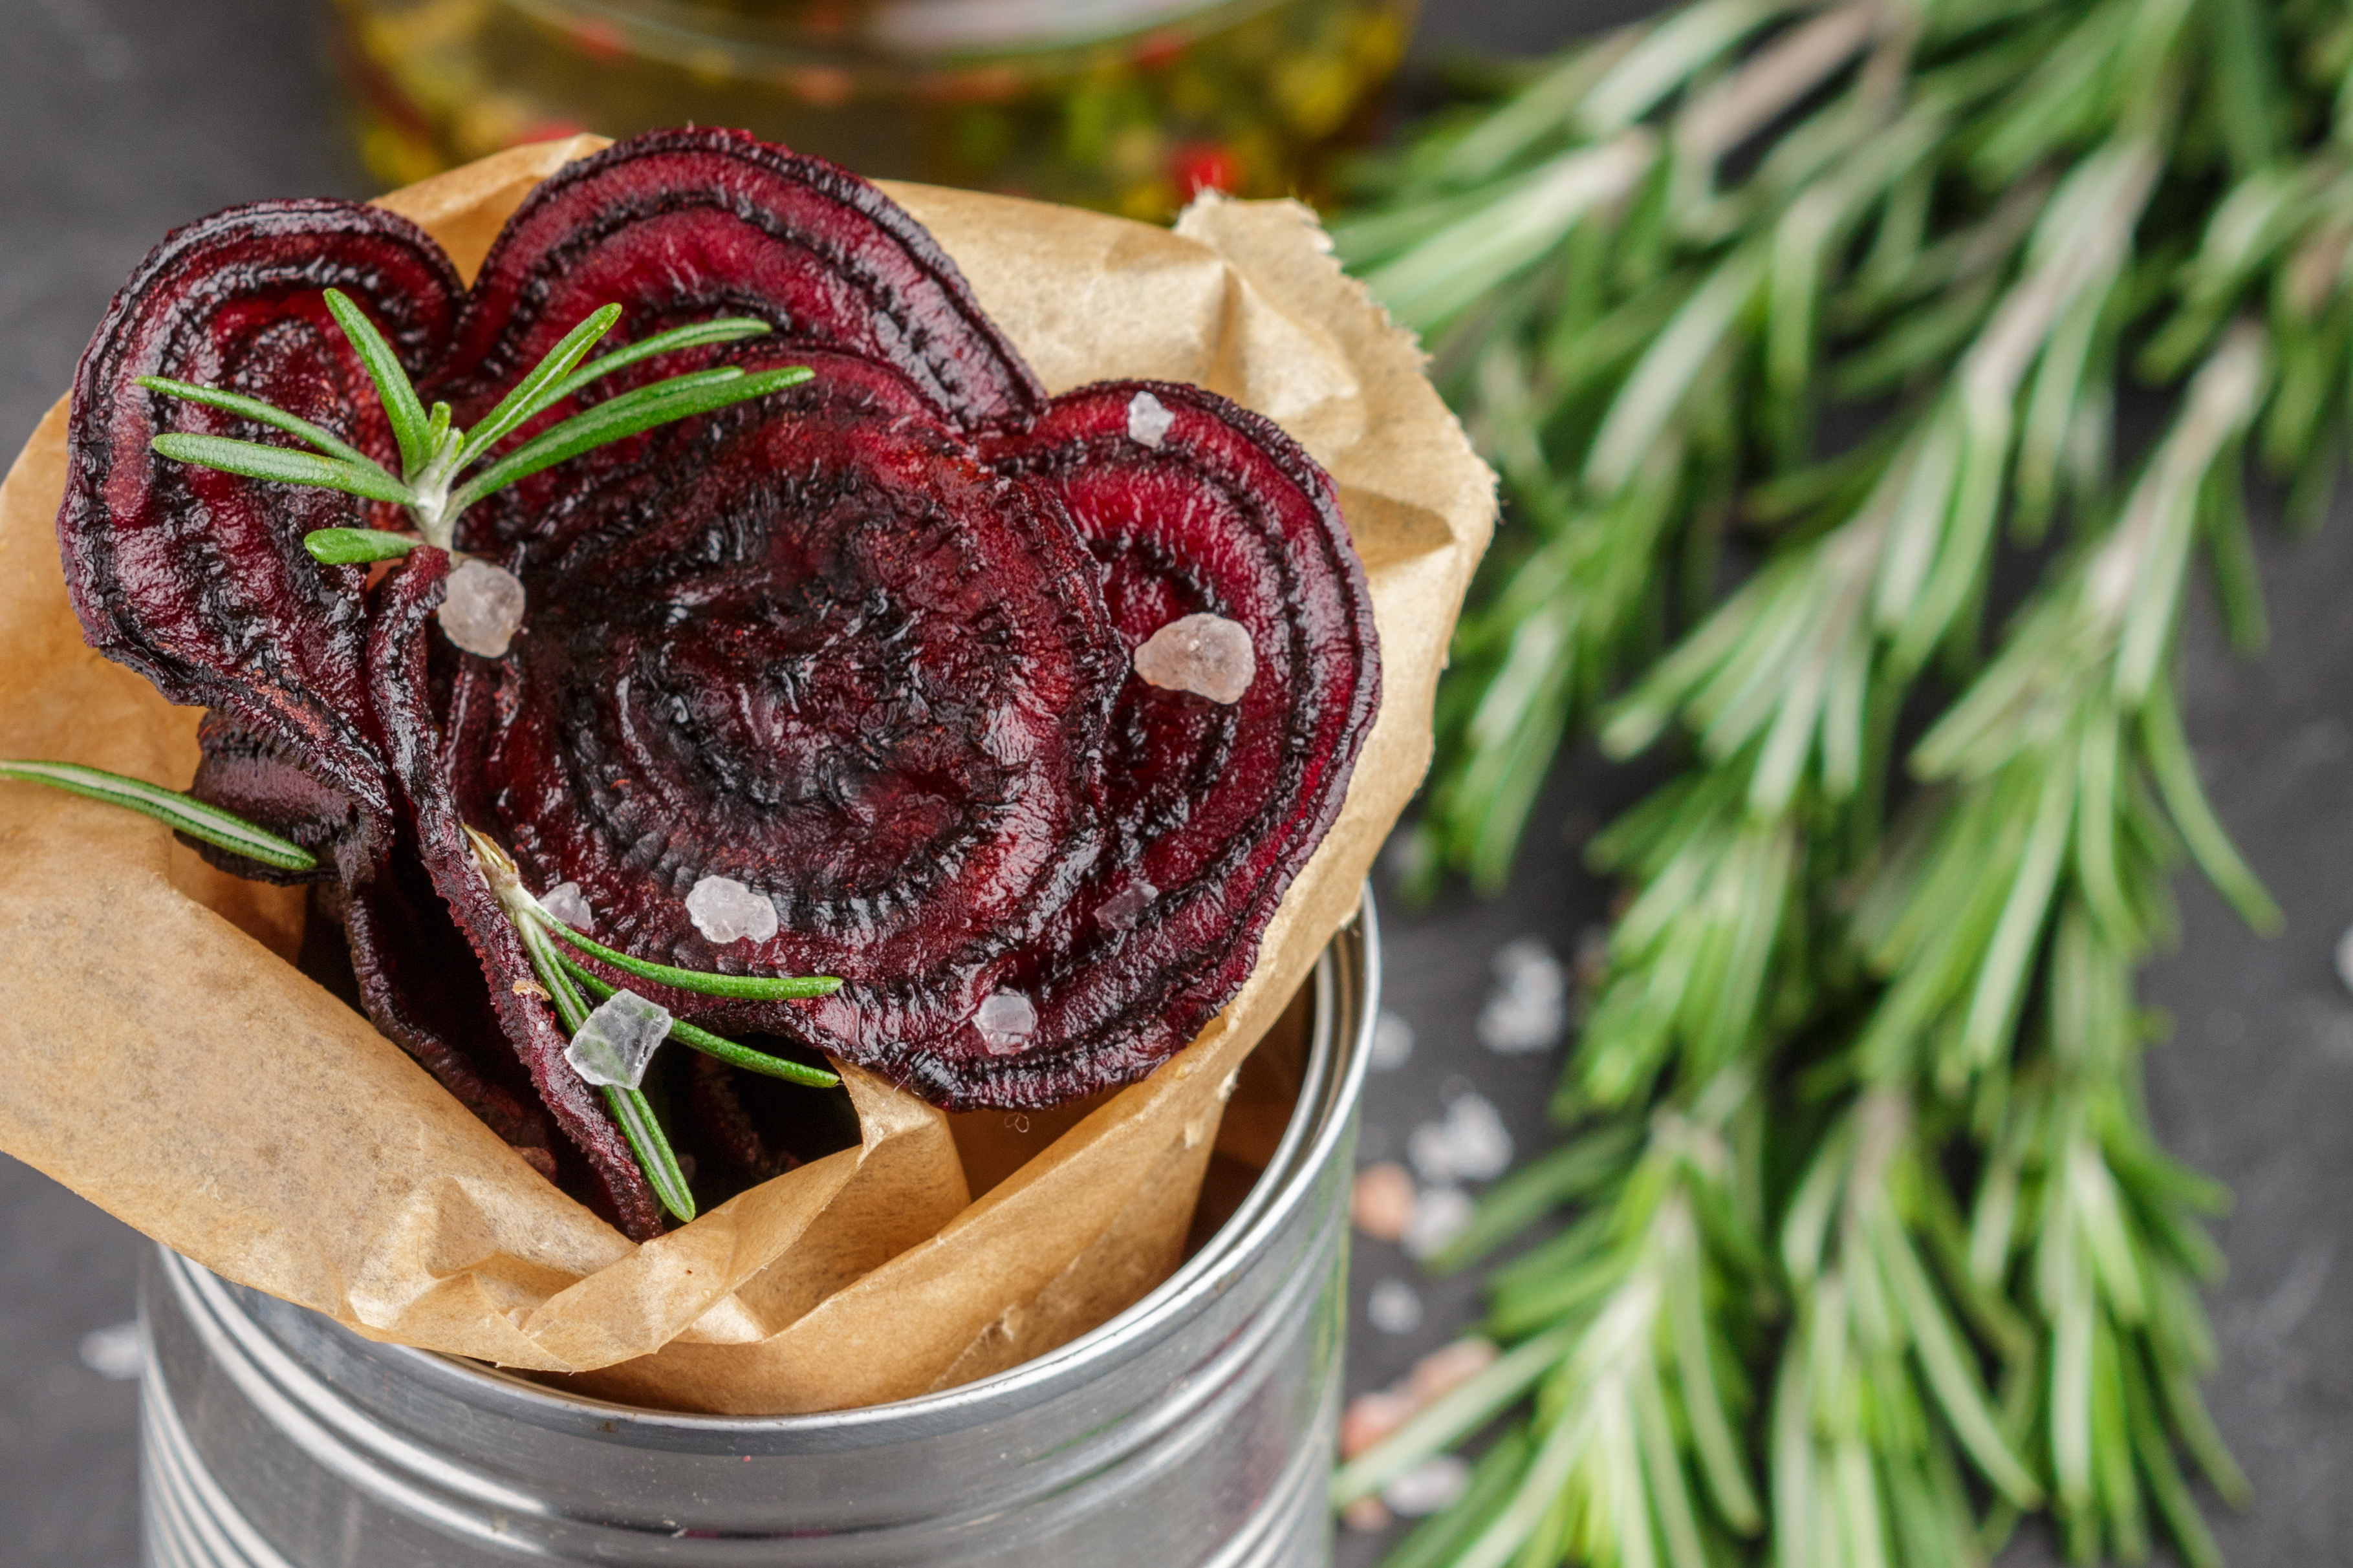 Healthy beetroot chips  with salt and rosemary. Snack for gourme